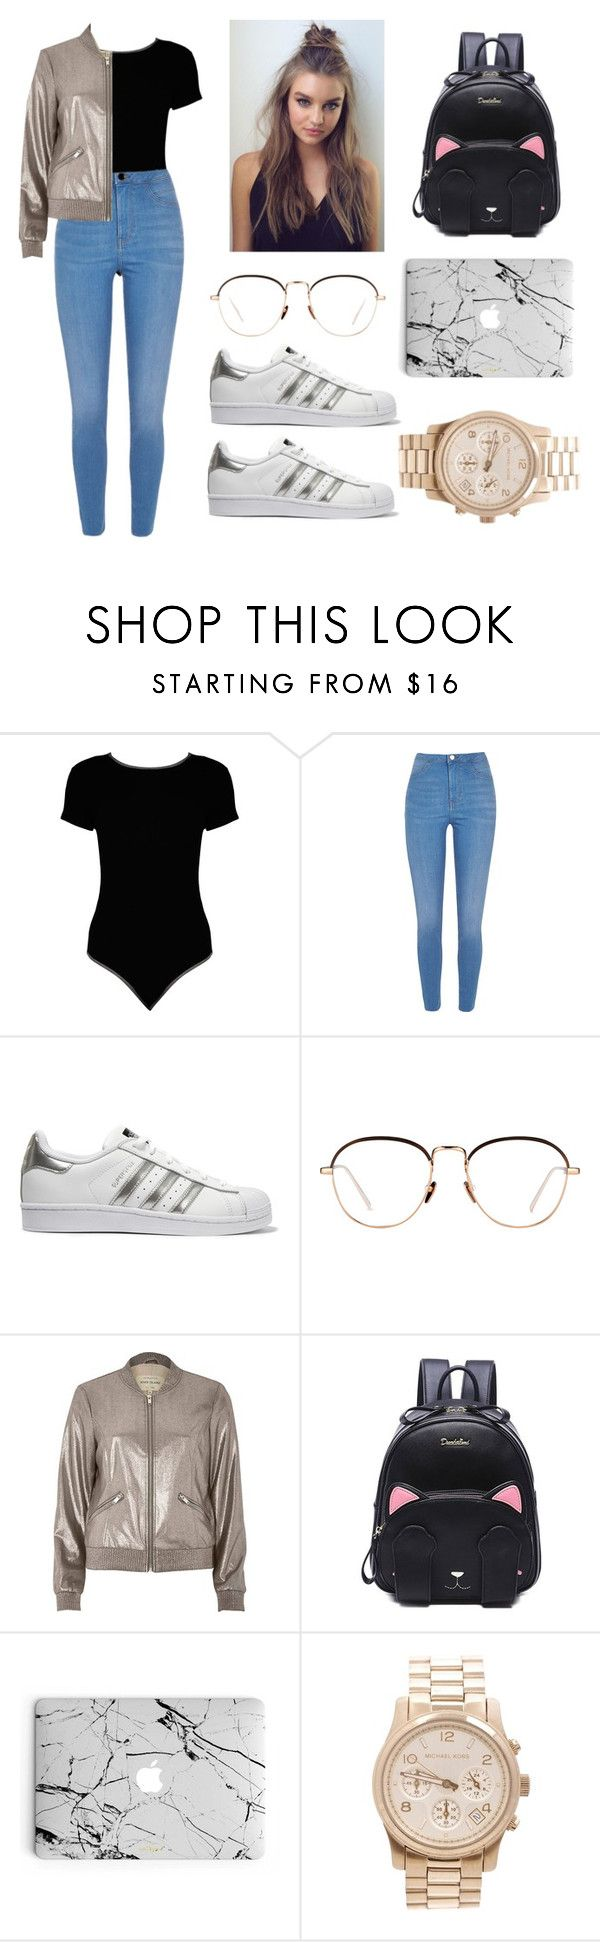 """Untitled #184"" by welcome-to-newyork on Polyvore featuring Boohoo, River Island, adidas Originals, Linda Farrow and Michael Kors"